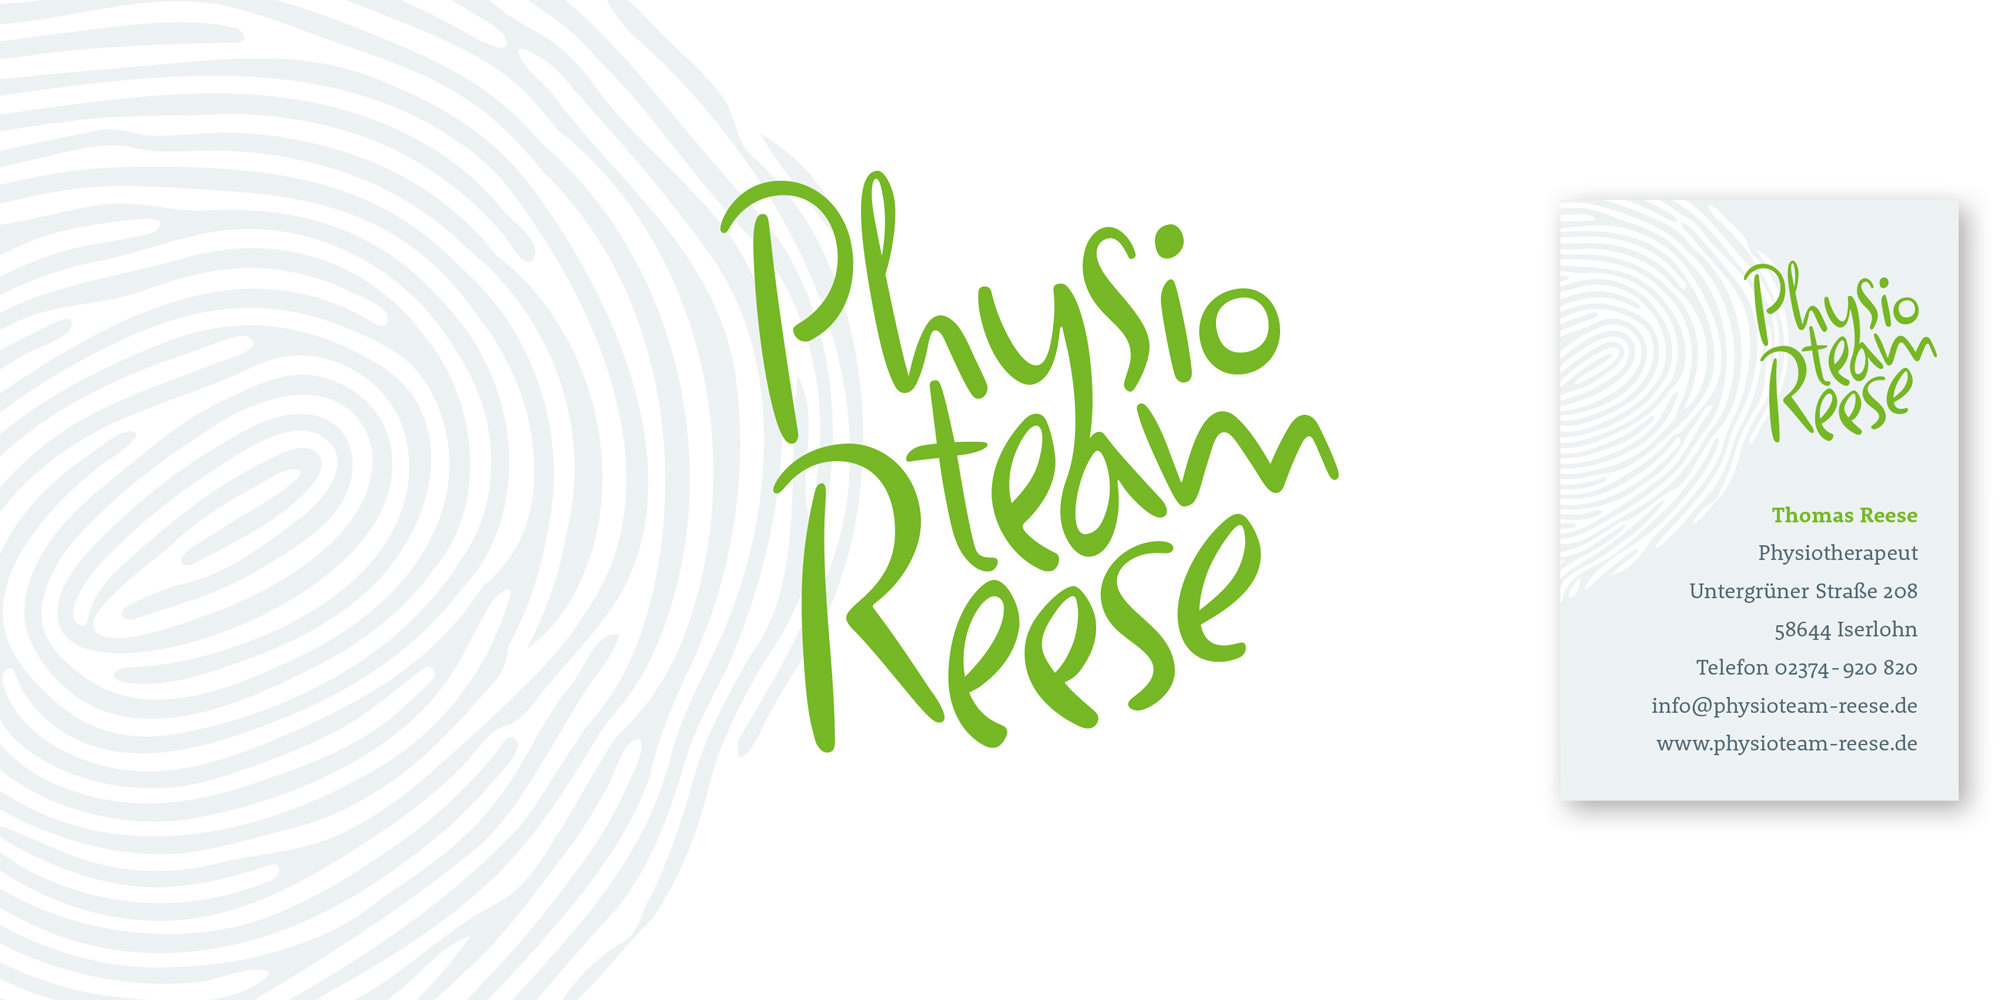 Physioteam Reese